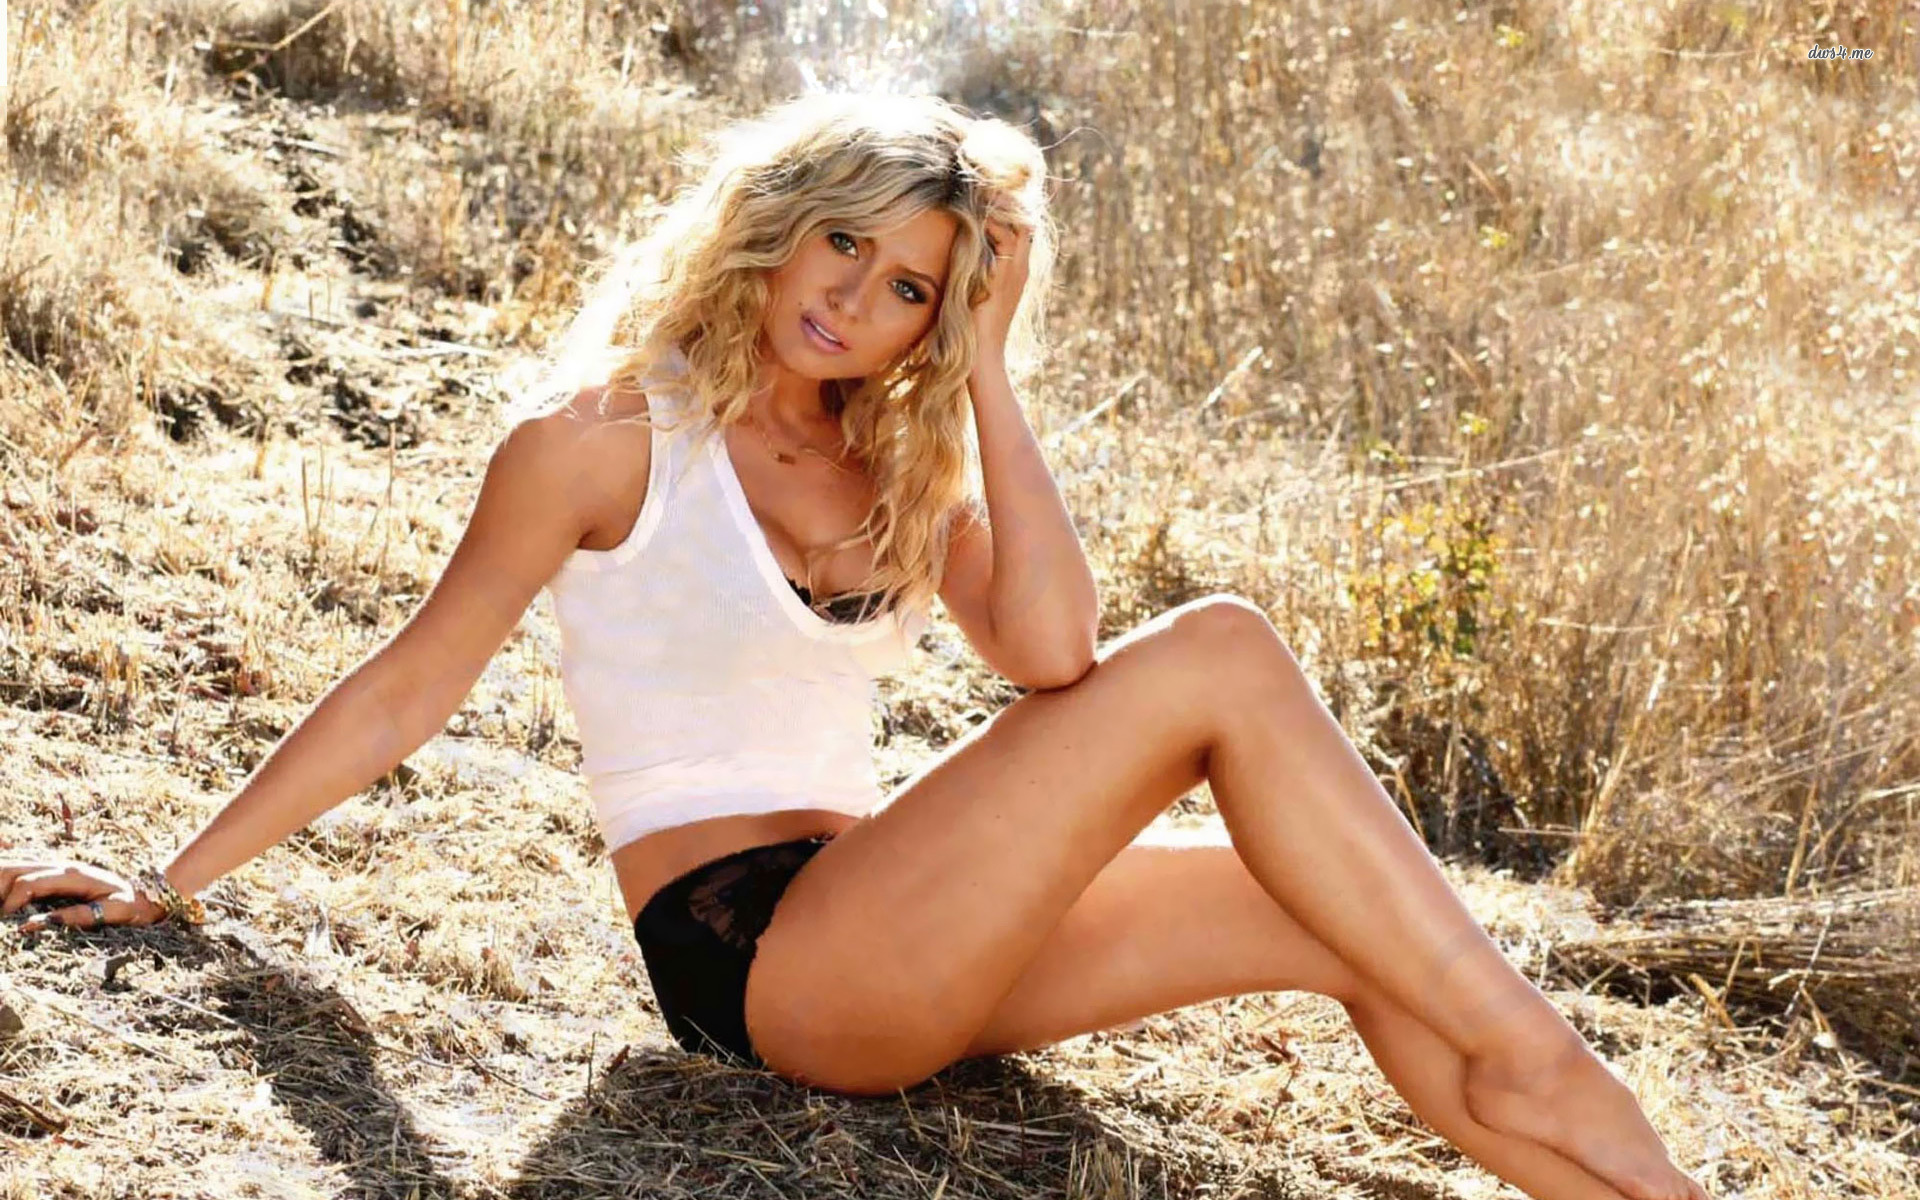 Alyson Michalka Wallpapers High Resolution and Quality